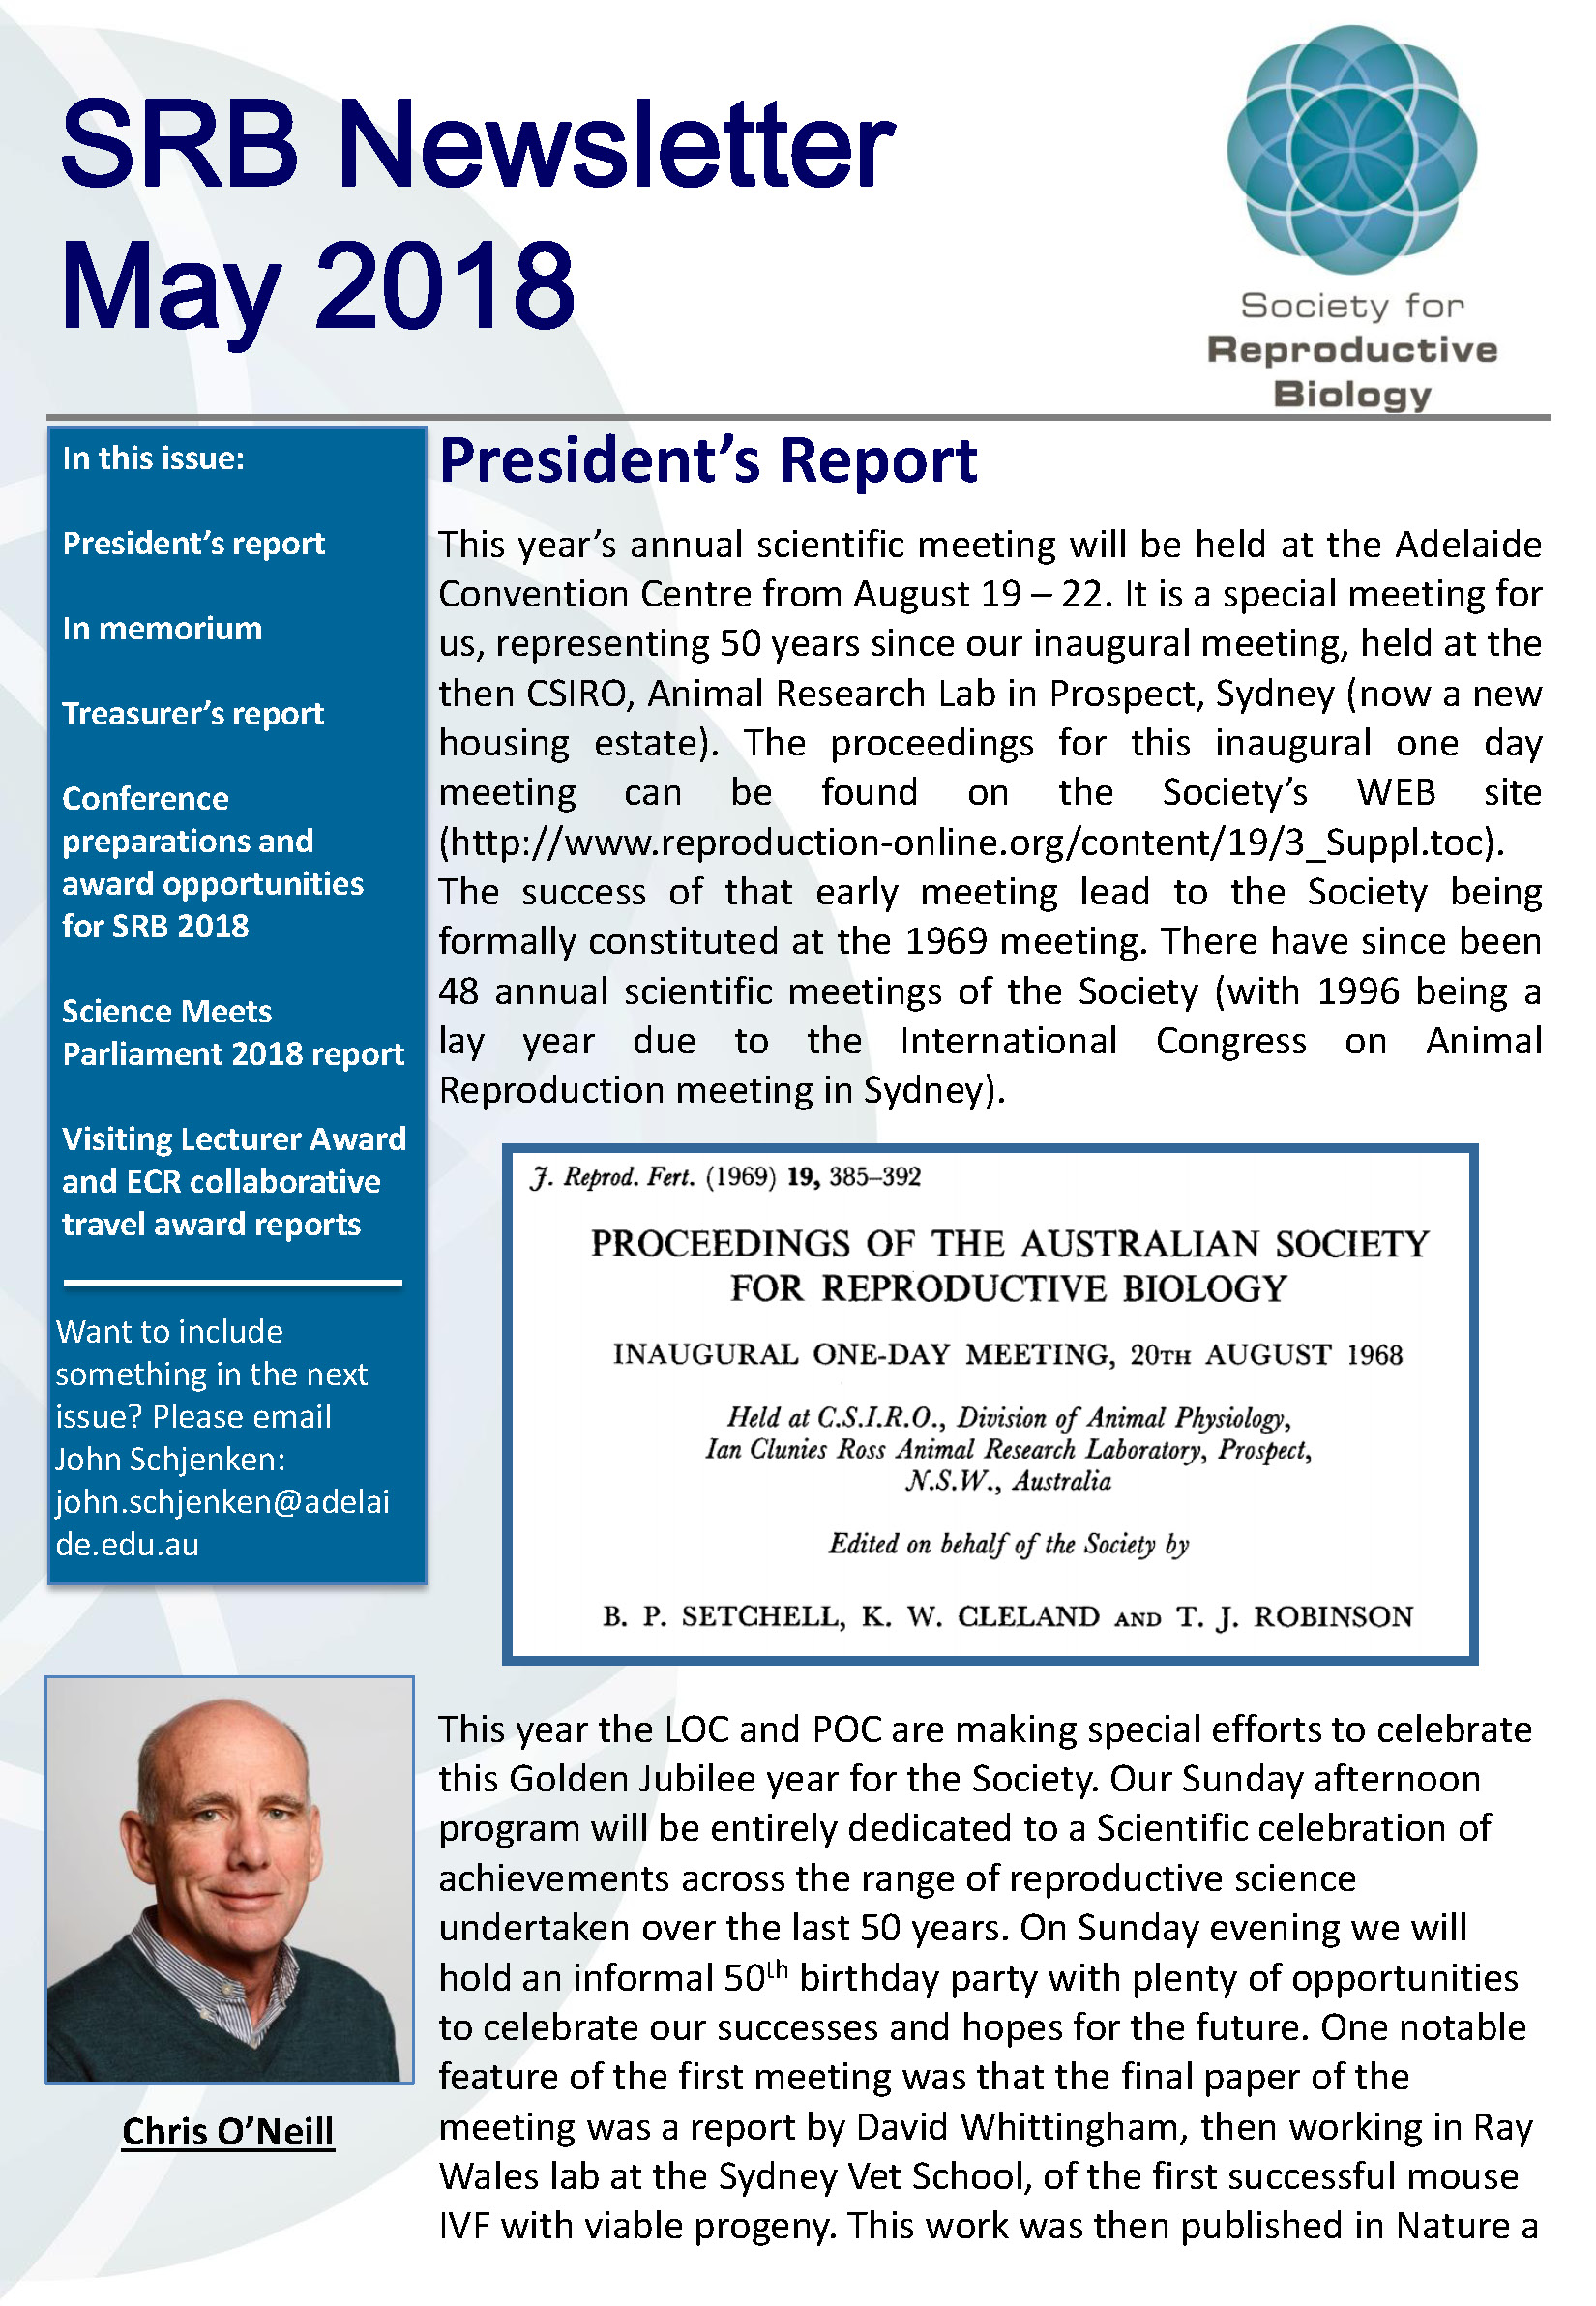 SRB-newsletter-May18-FINAL_Page_01.jpg